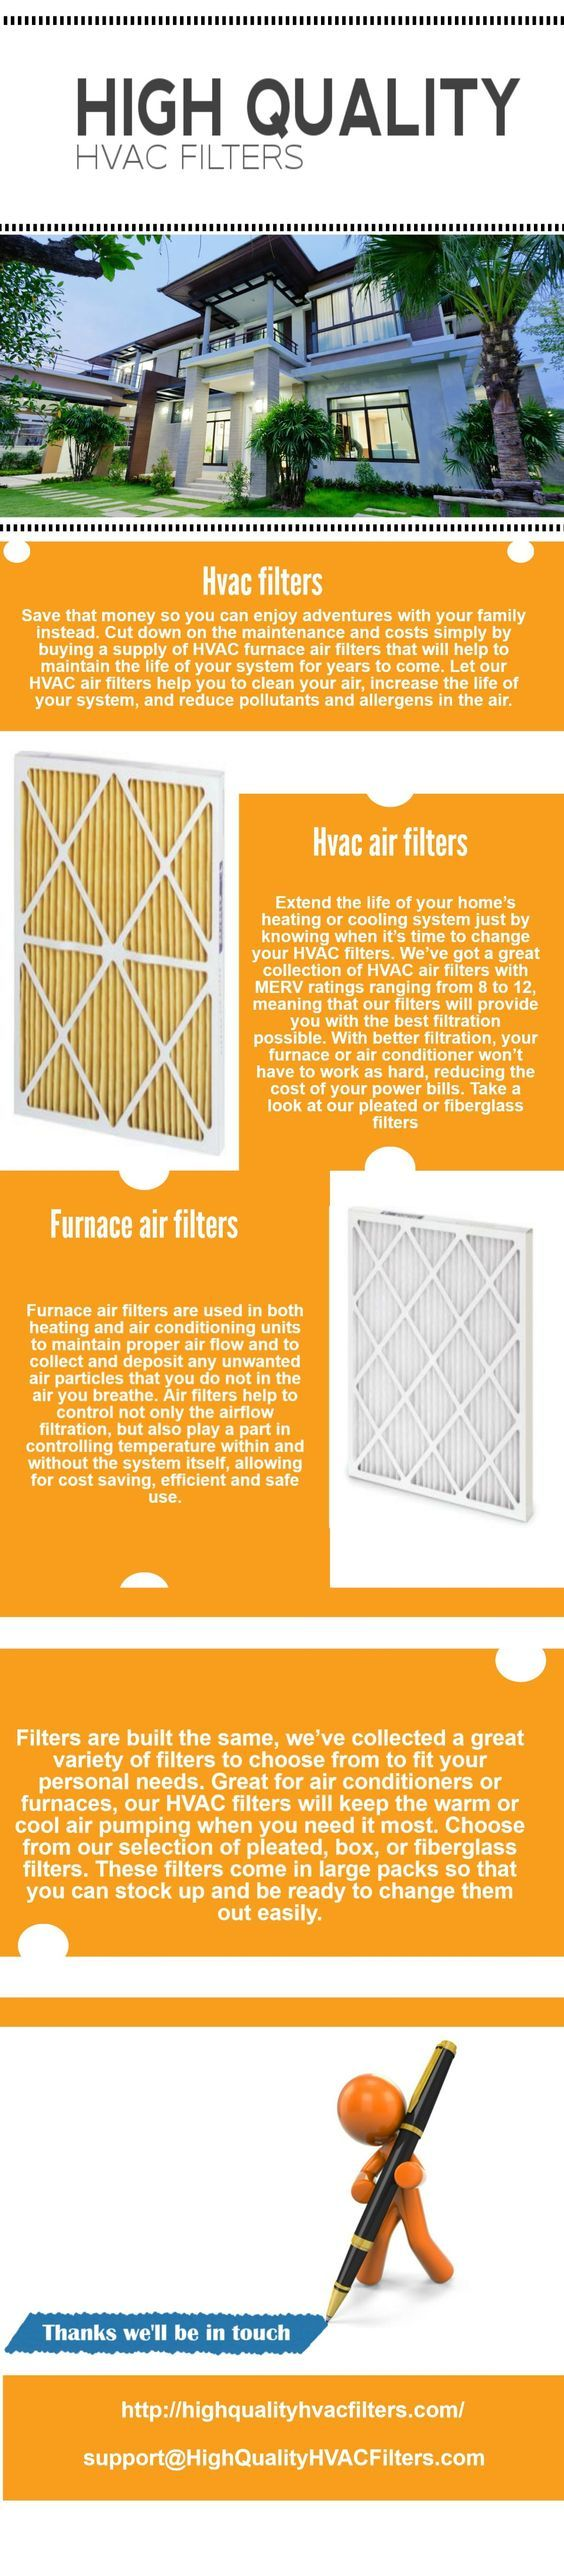 High Quality HVAC Filters (infographic)